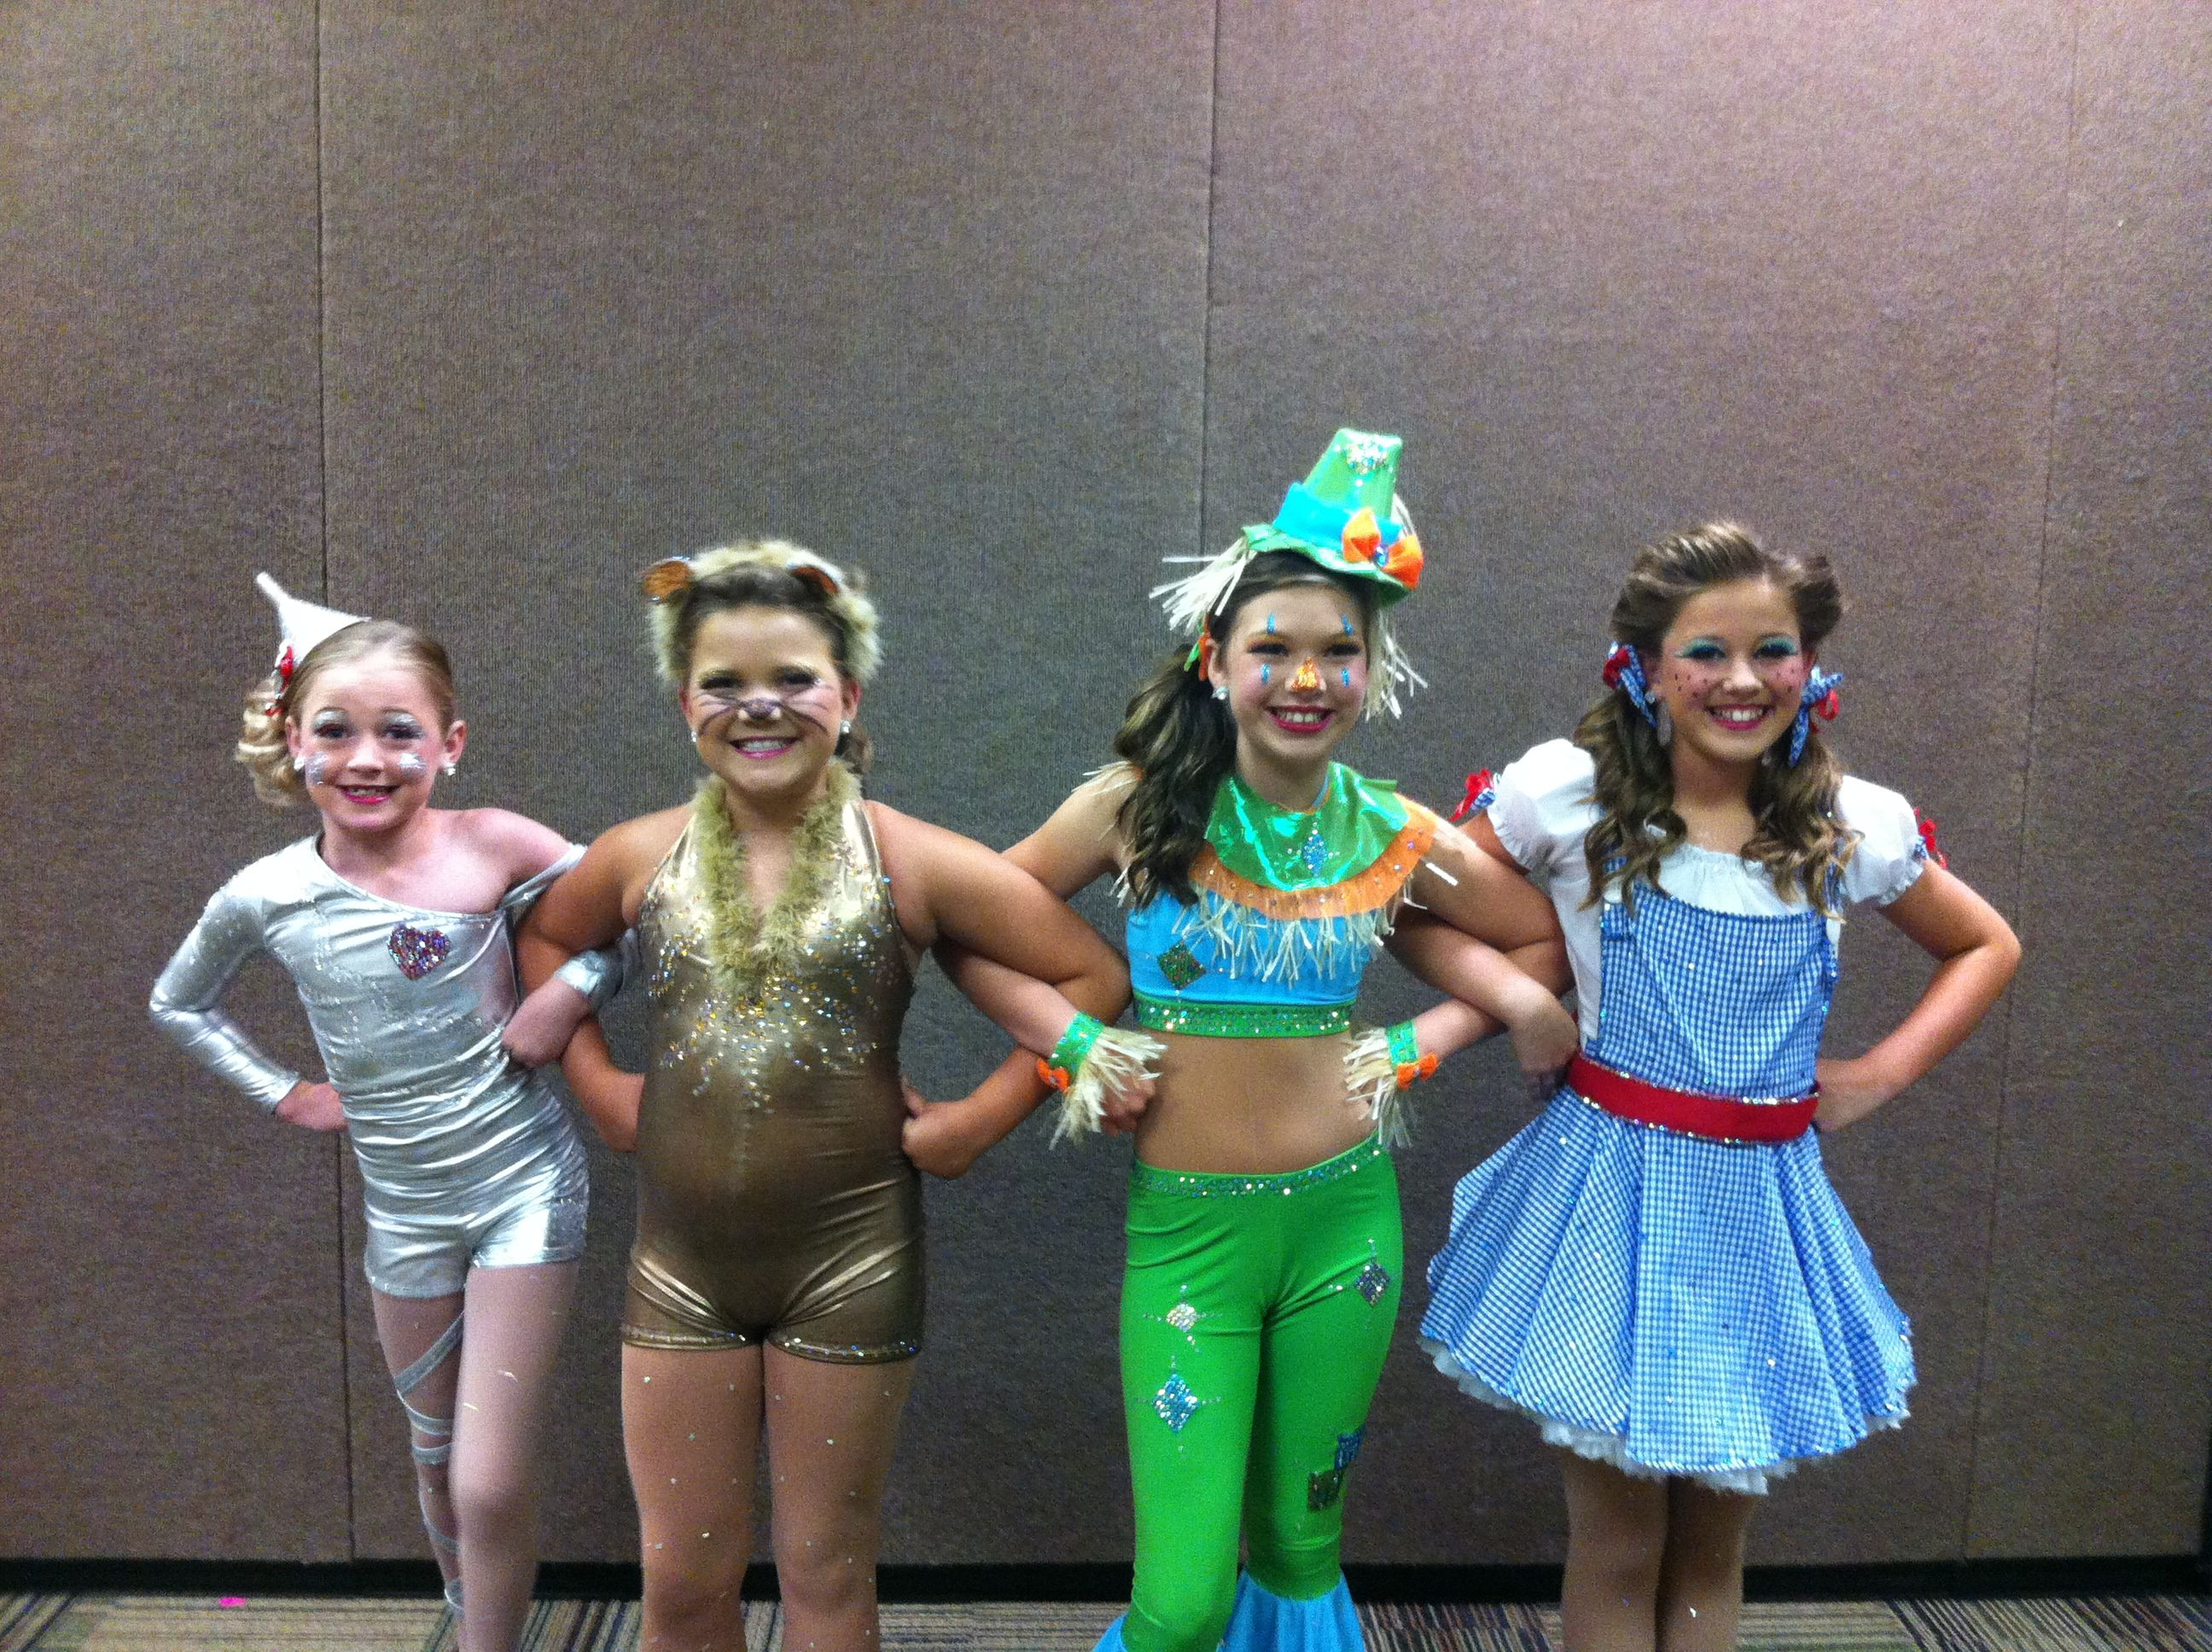 Dance costume girls wizard of oz | Dance | Pinterest | Dance ...